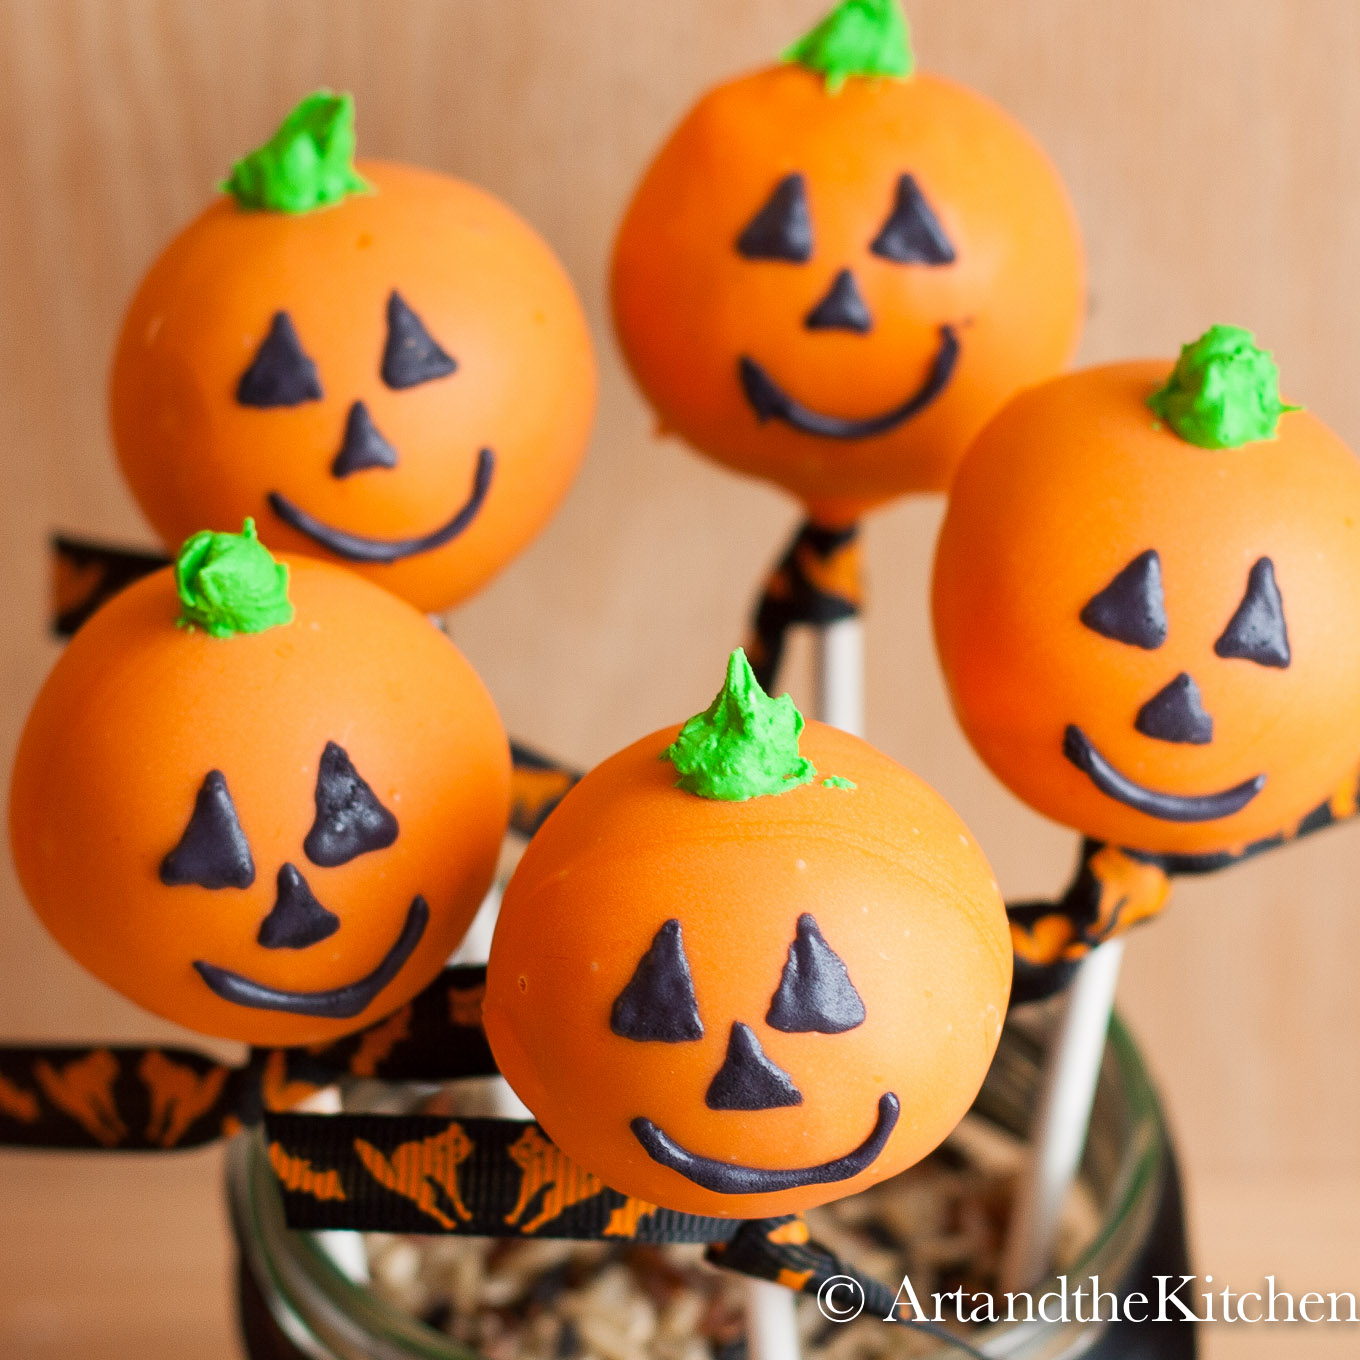 Five round cake pops that are decorated like Jack O Lanterns.